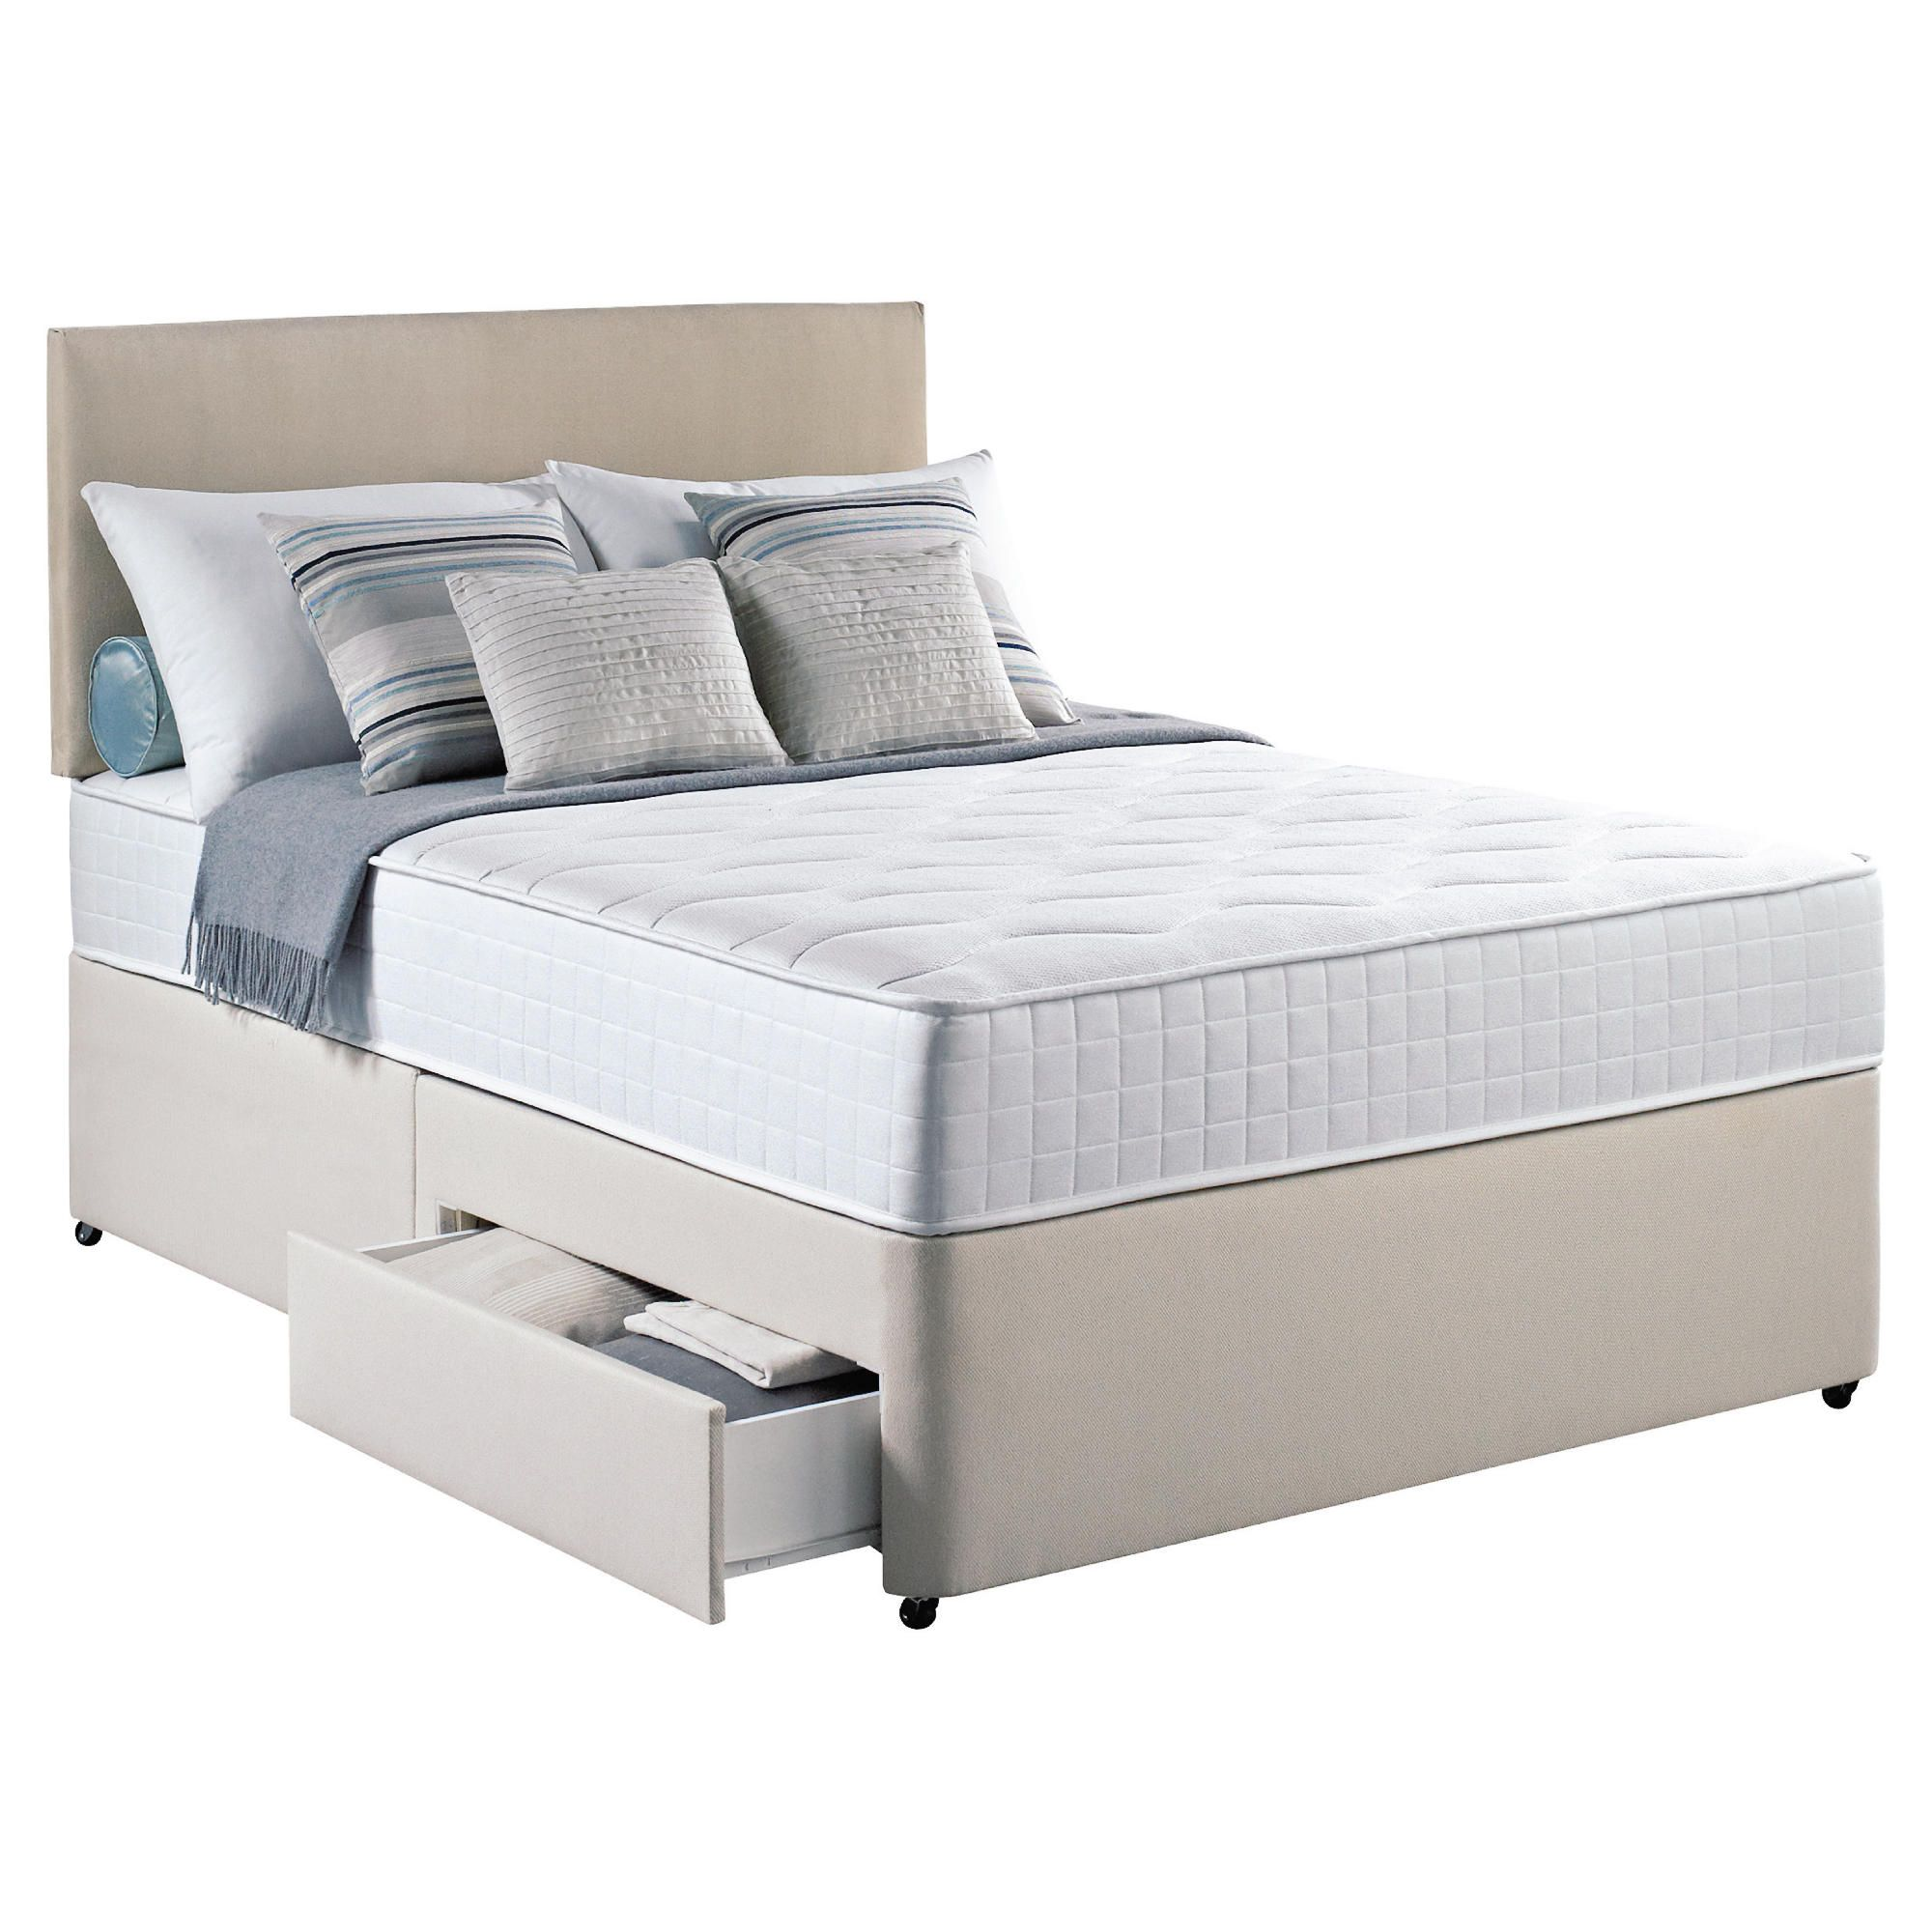 Silentnight Pocket Essentials Double 2 Drawer Divan Bed at Tesco Direct